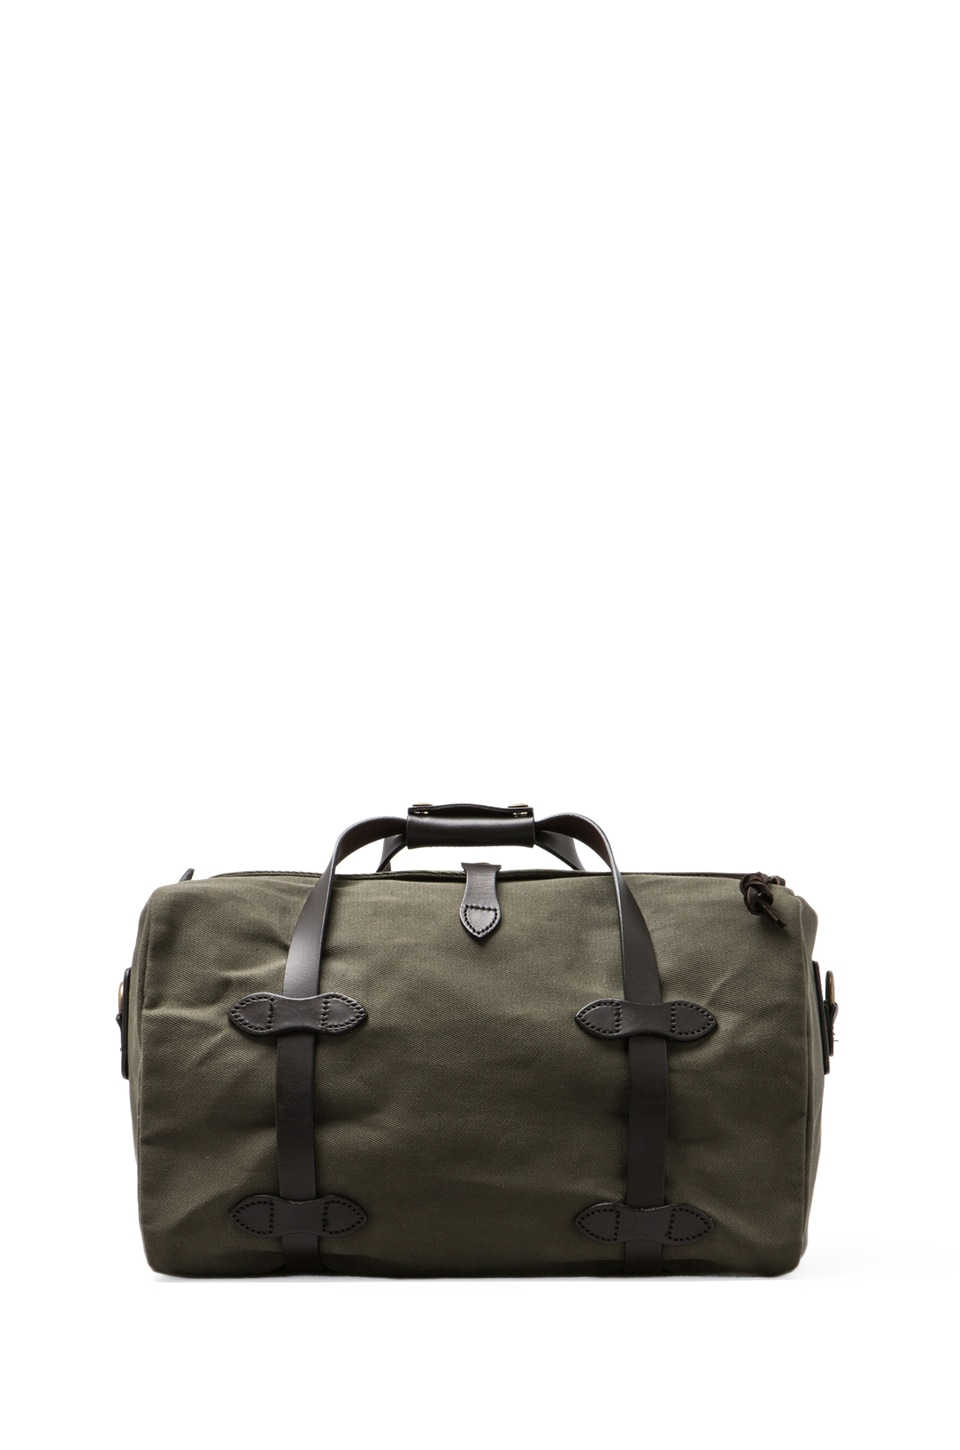 Filson Small Duffle in Otter Green